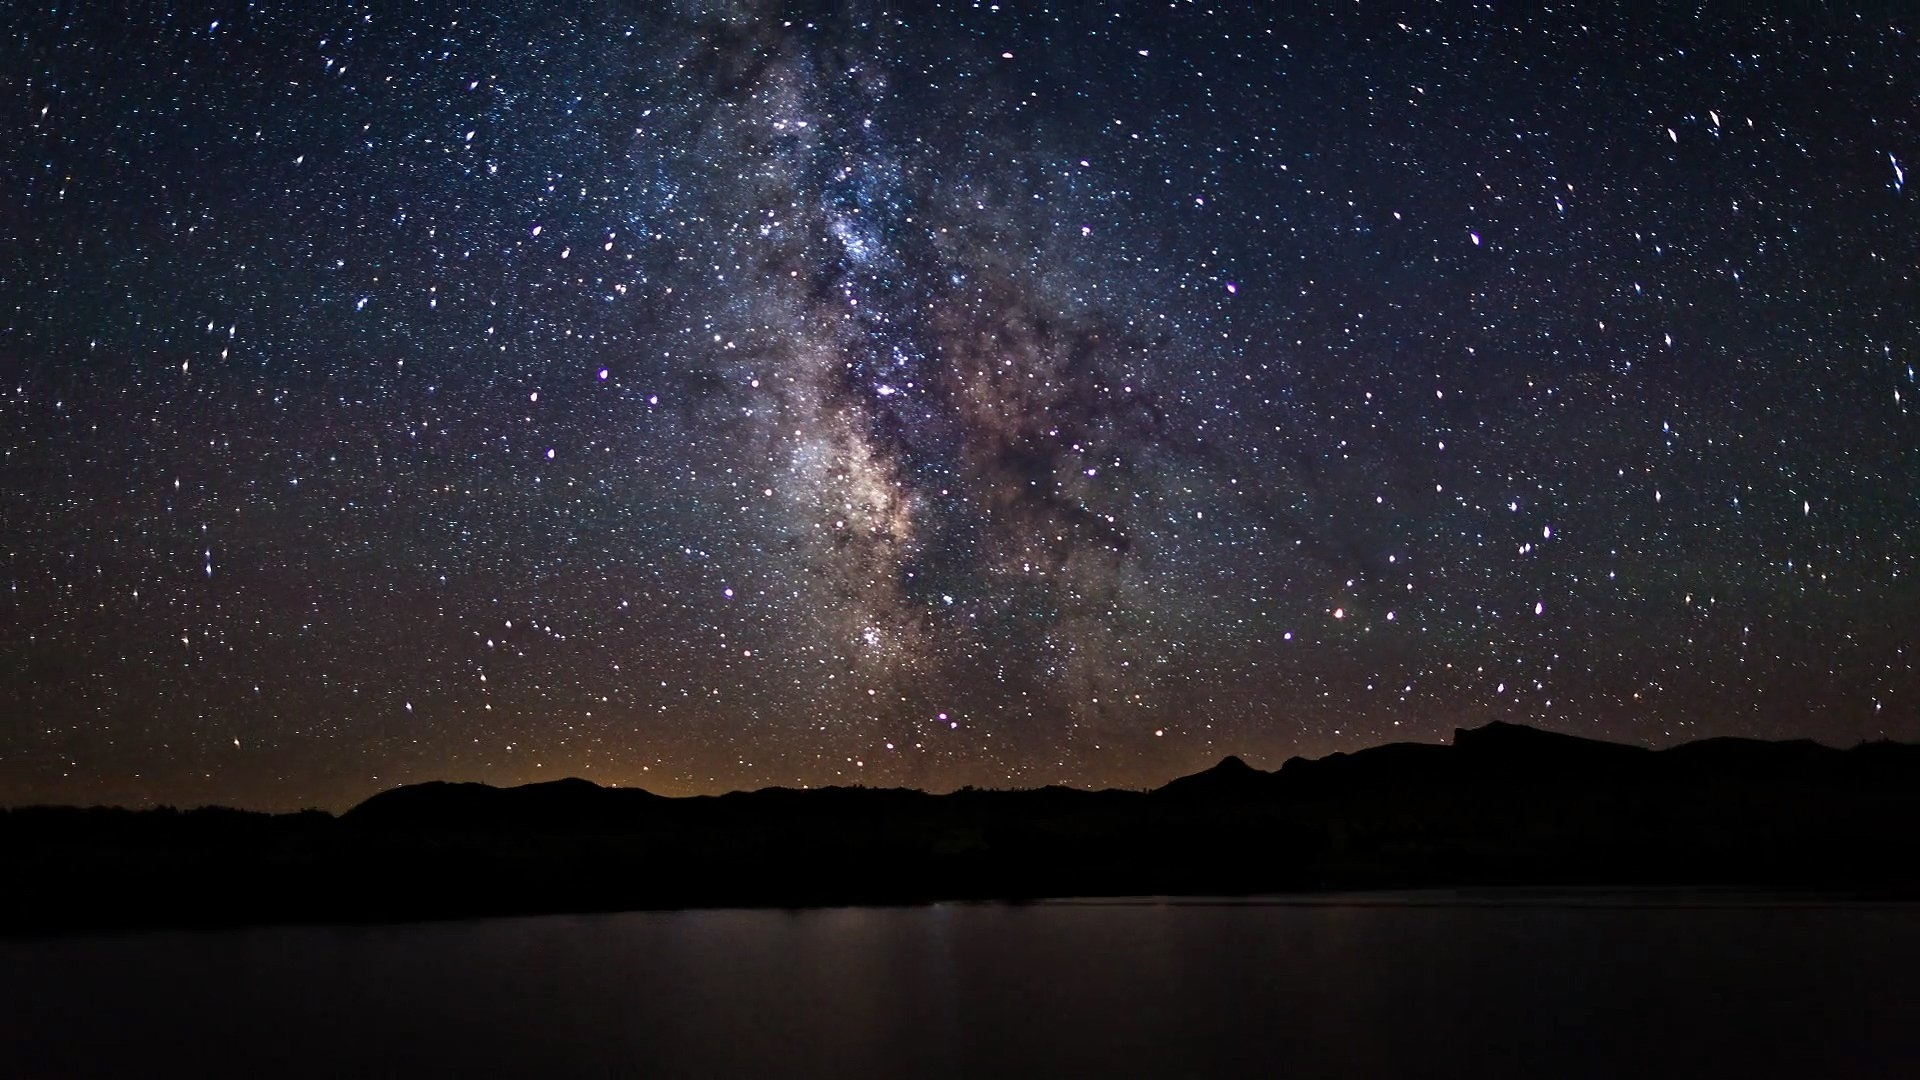 125 milky way hd wallpapers | background images - wallpaper abyss